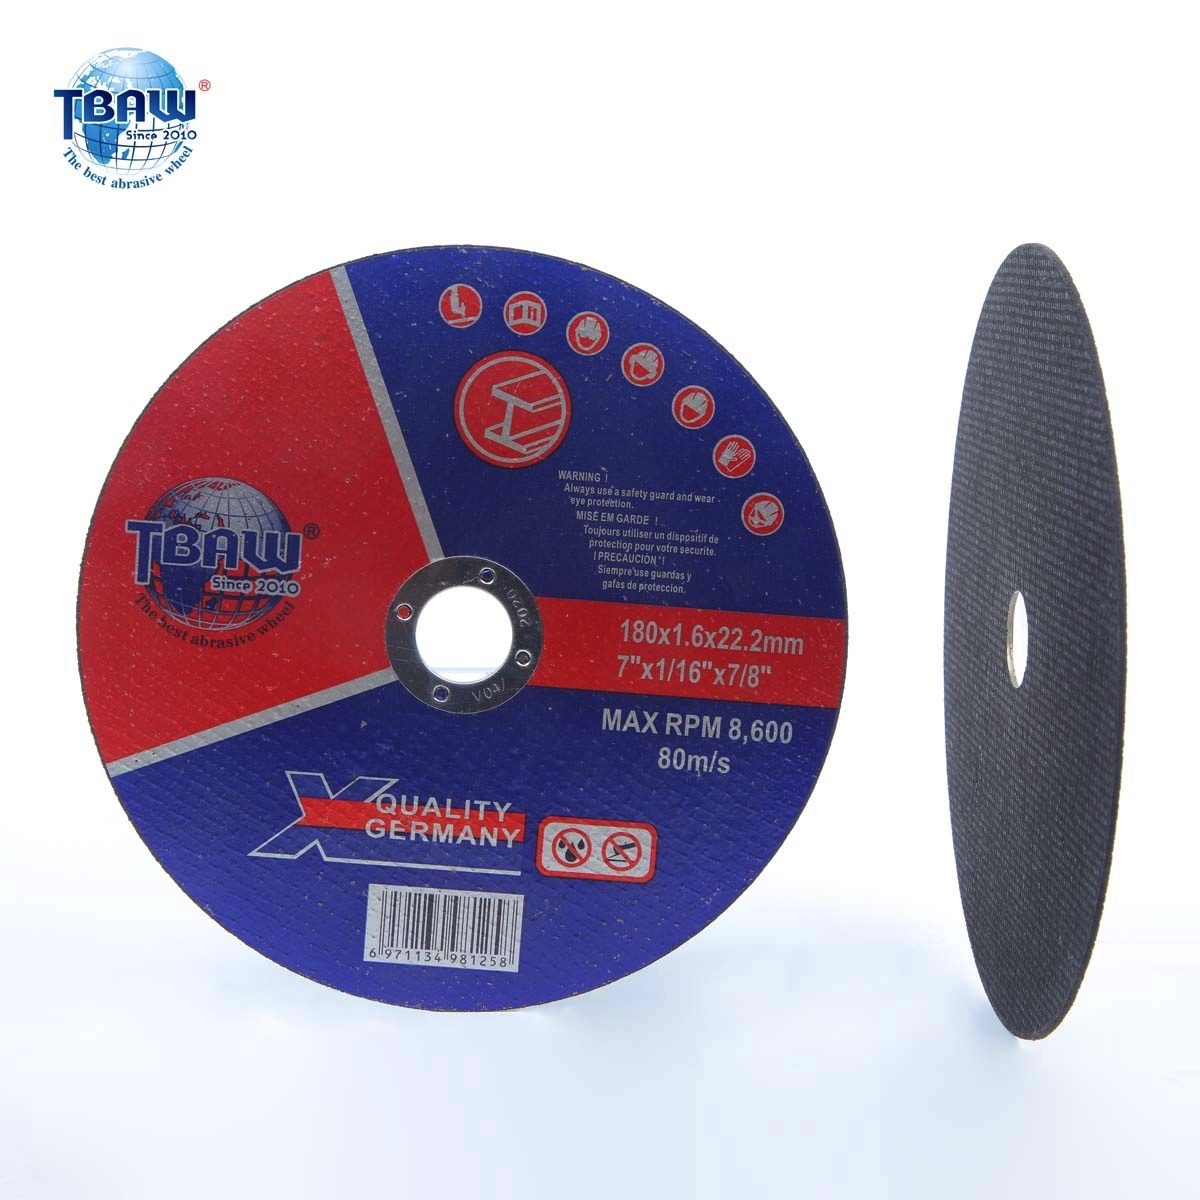 Metal Stainless Steel Cutting Discs 100 Pack 7 X1 16 X7 8 Cut Off Wheel Business Industrial Cnc Metalworking Supplies